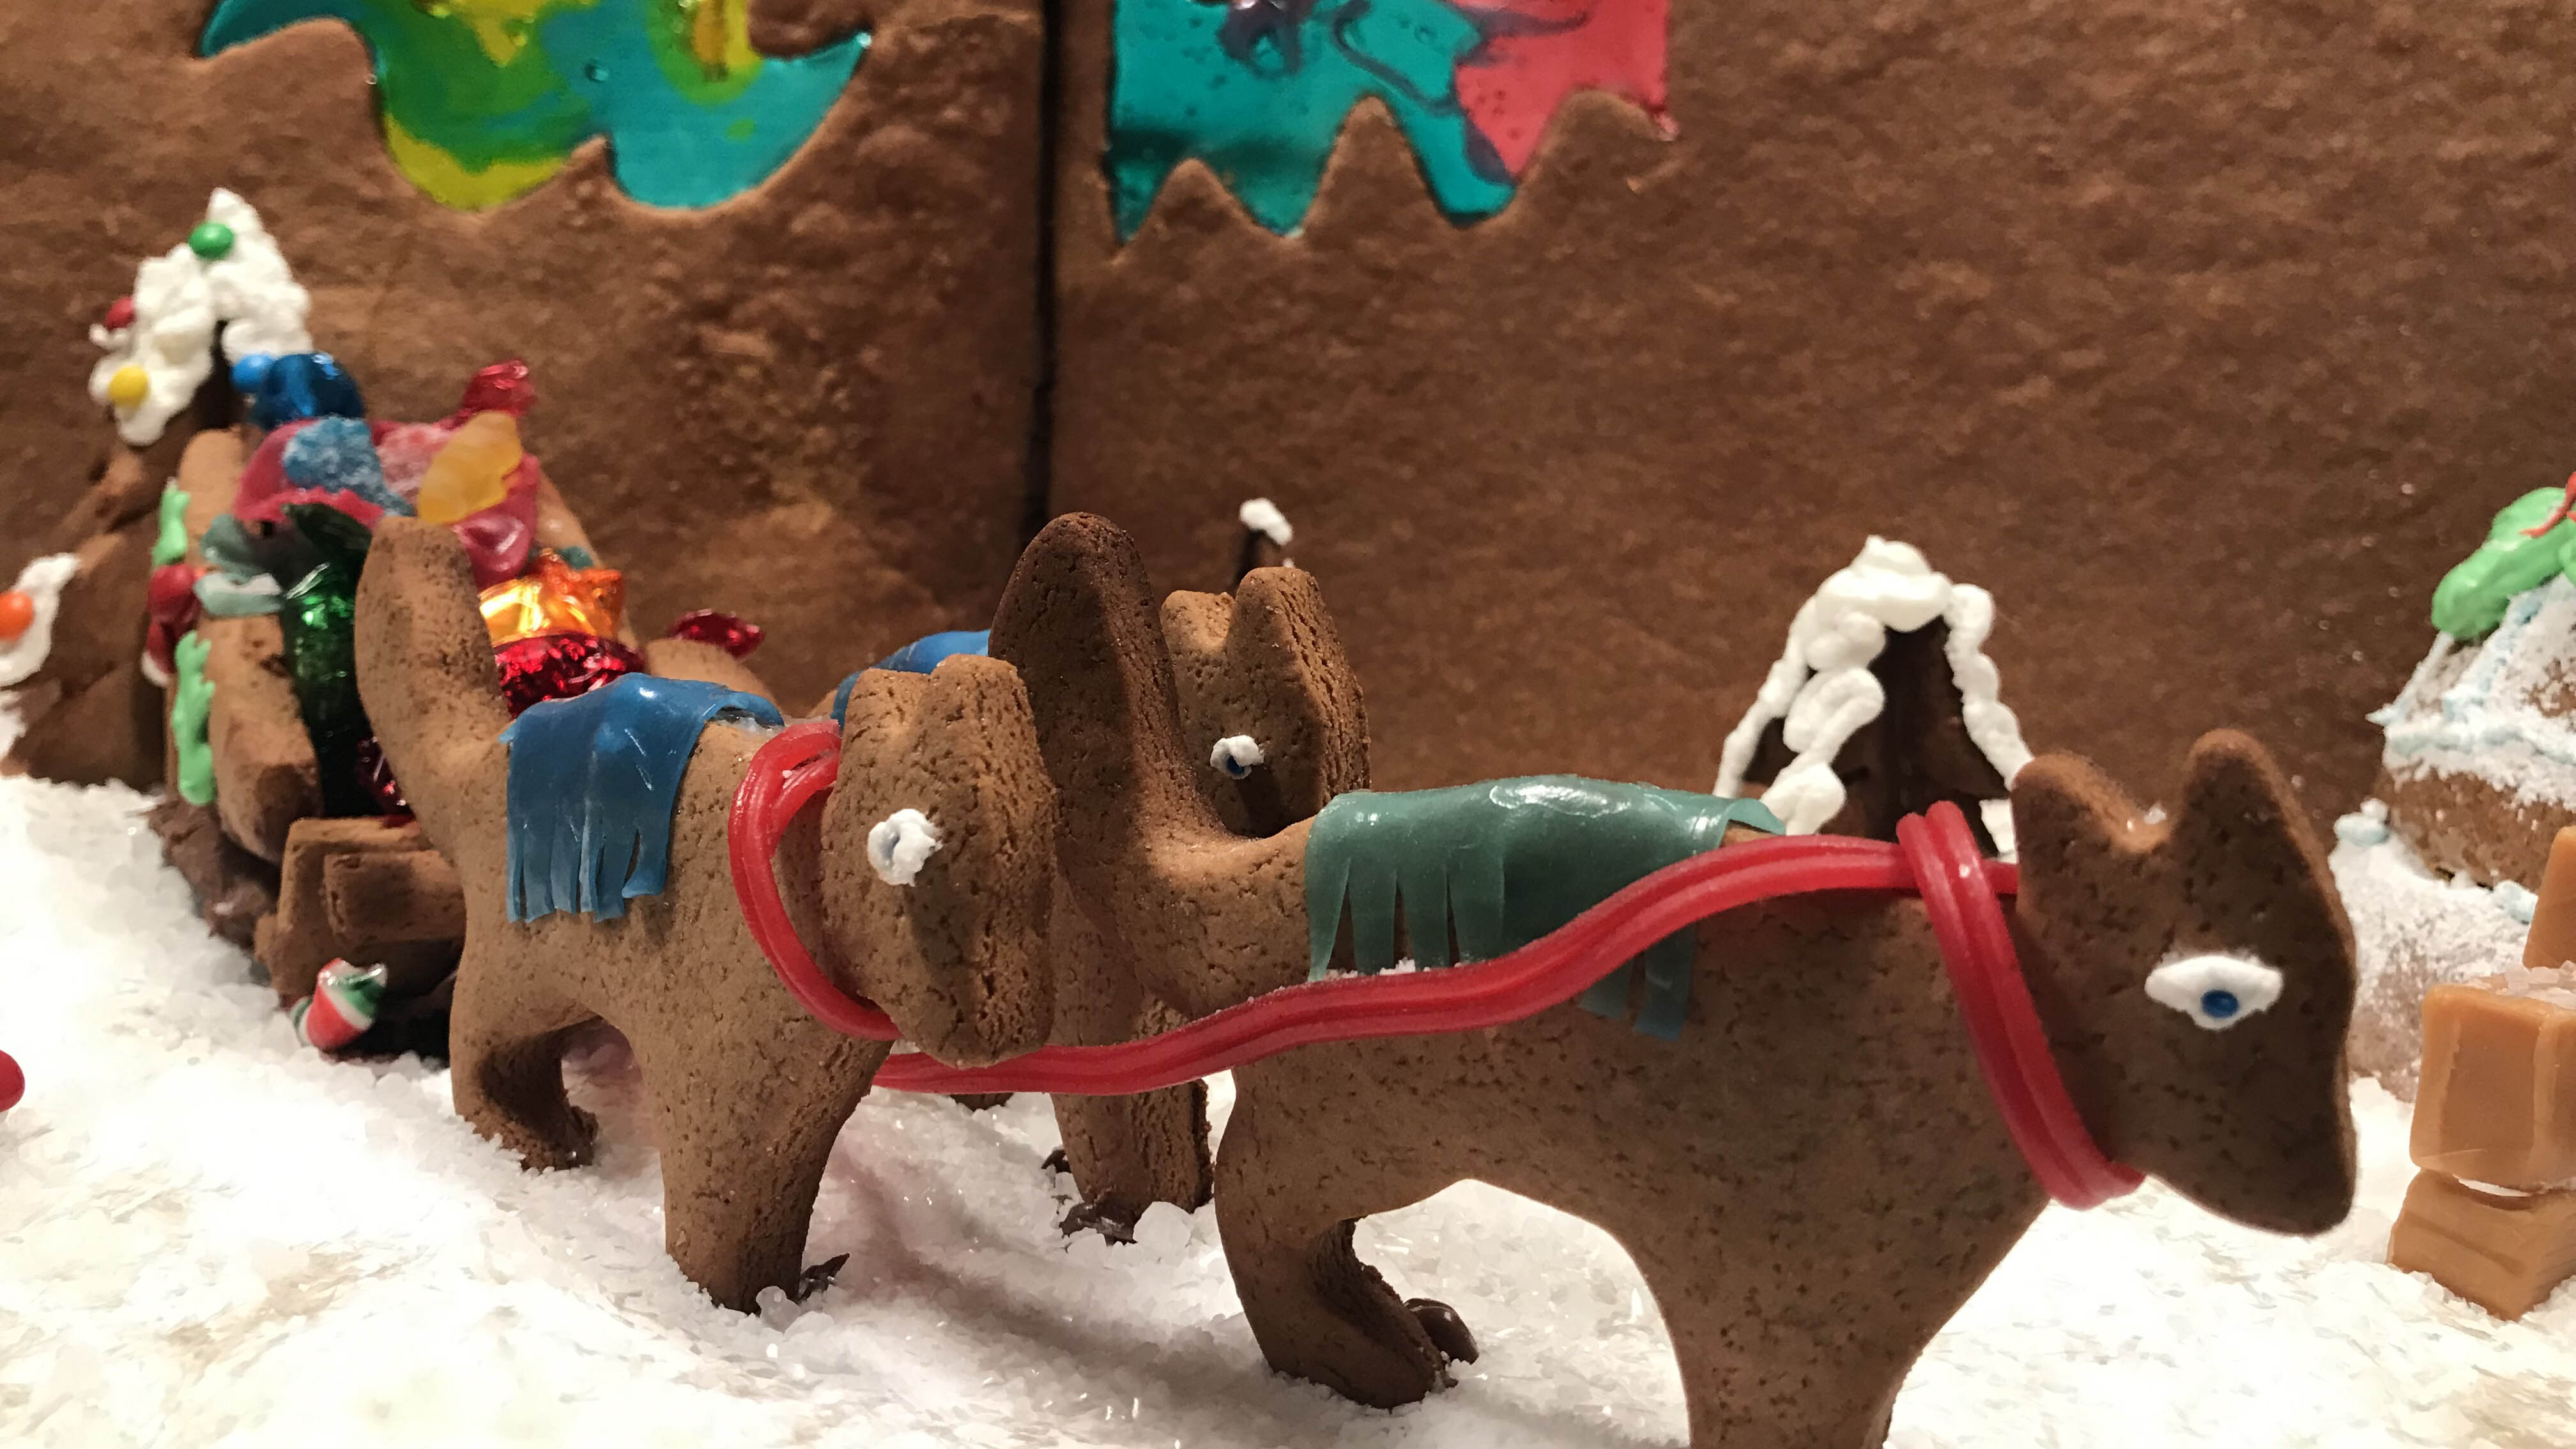 Gingerbread sled dogs pull a gingerbread sleigh filled with treats.